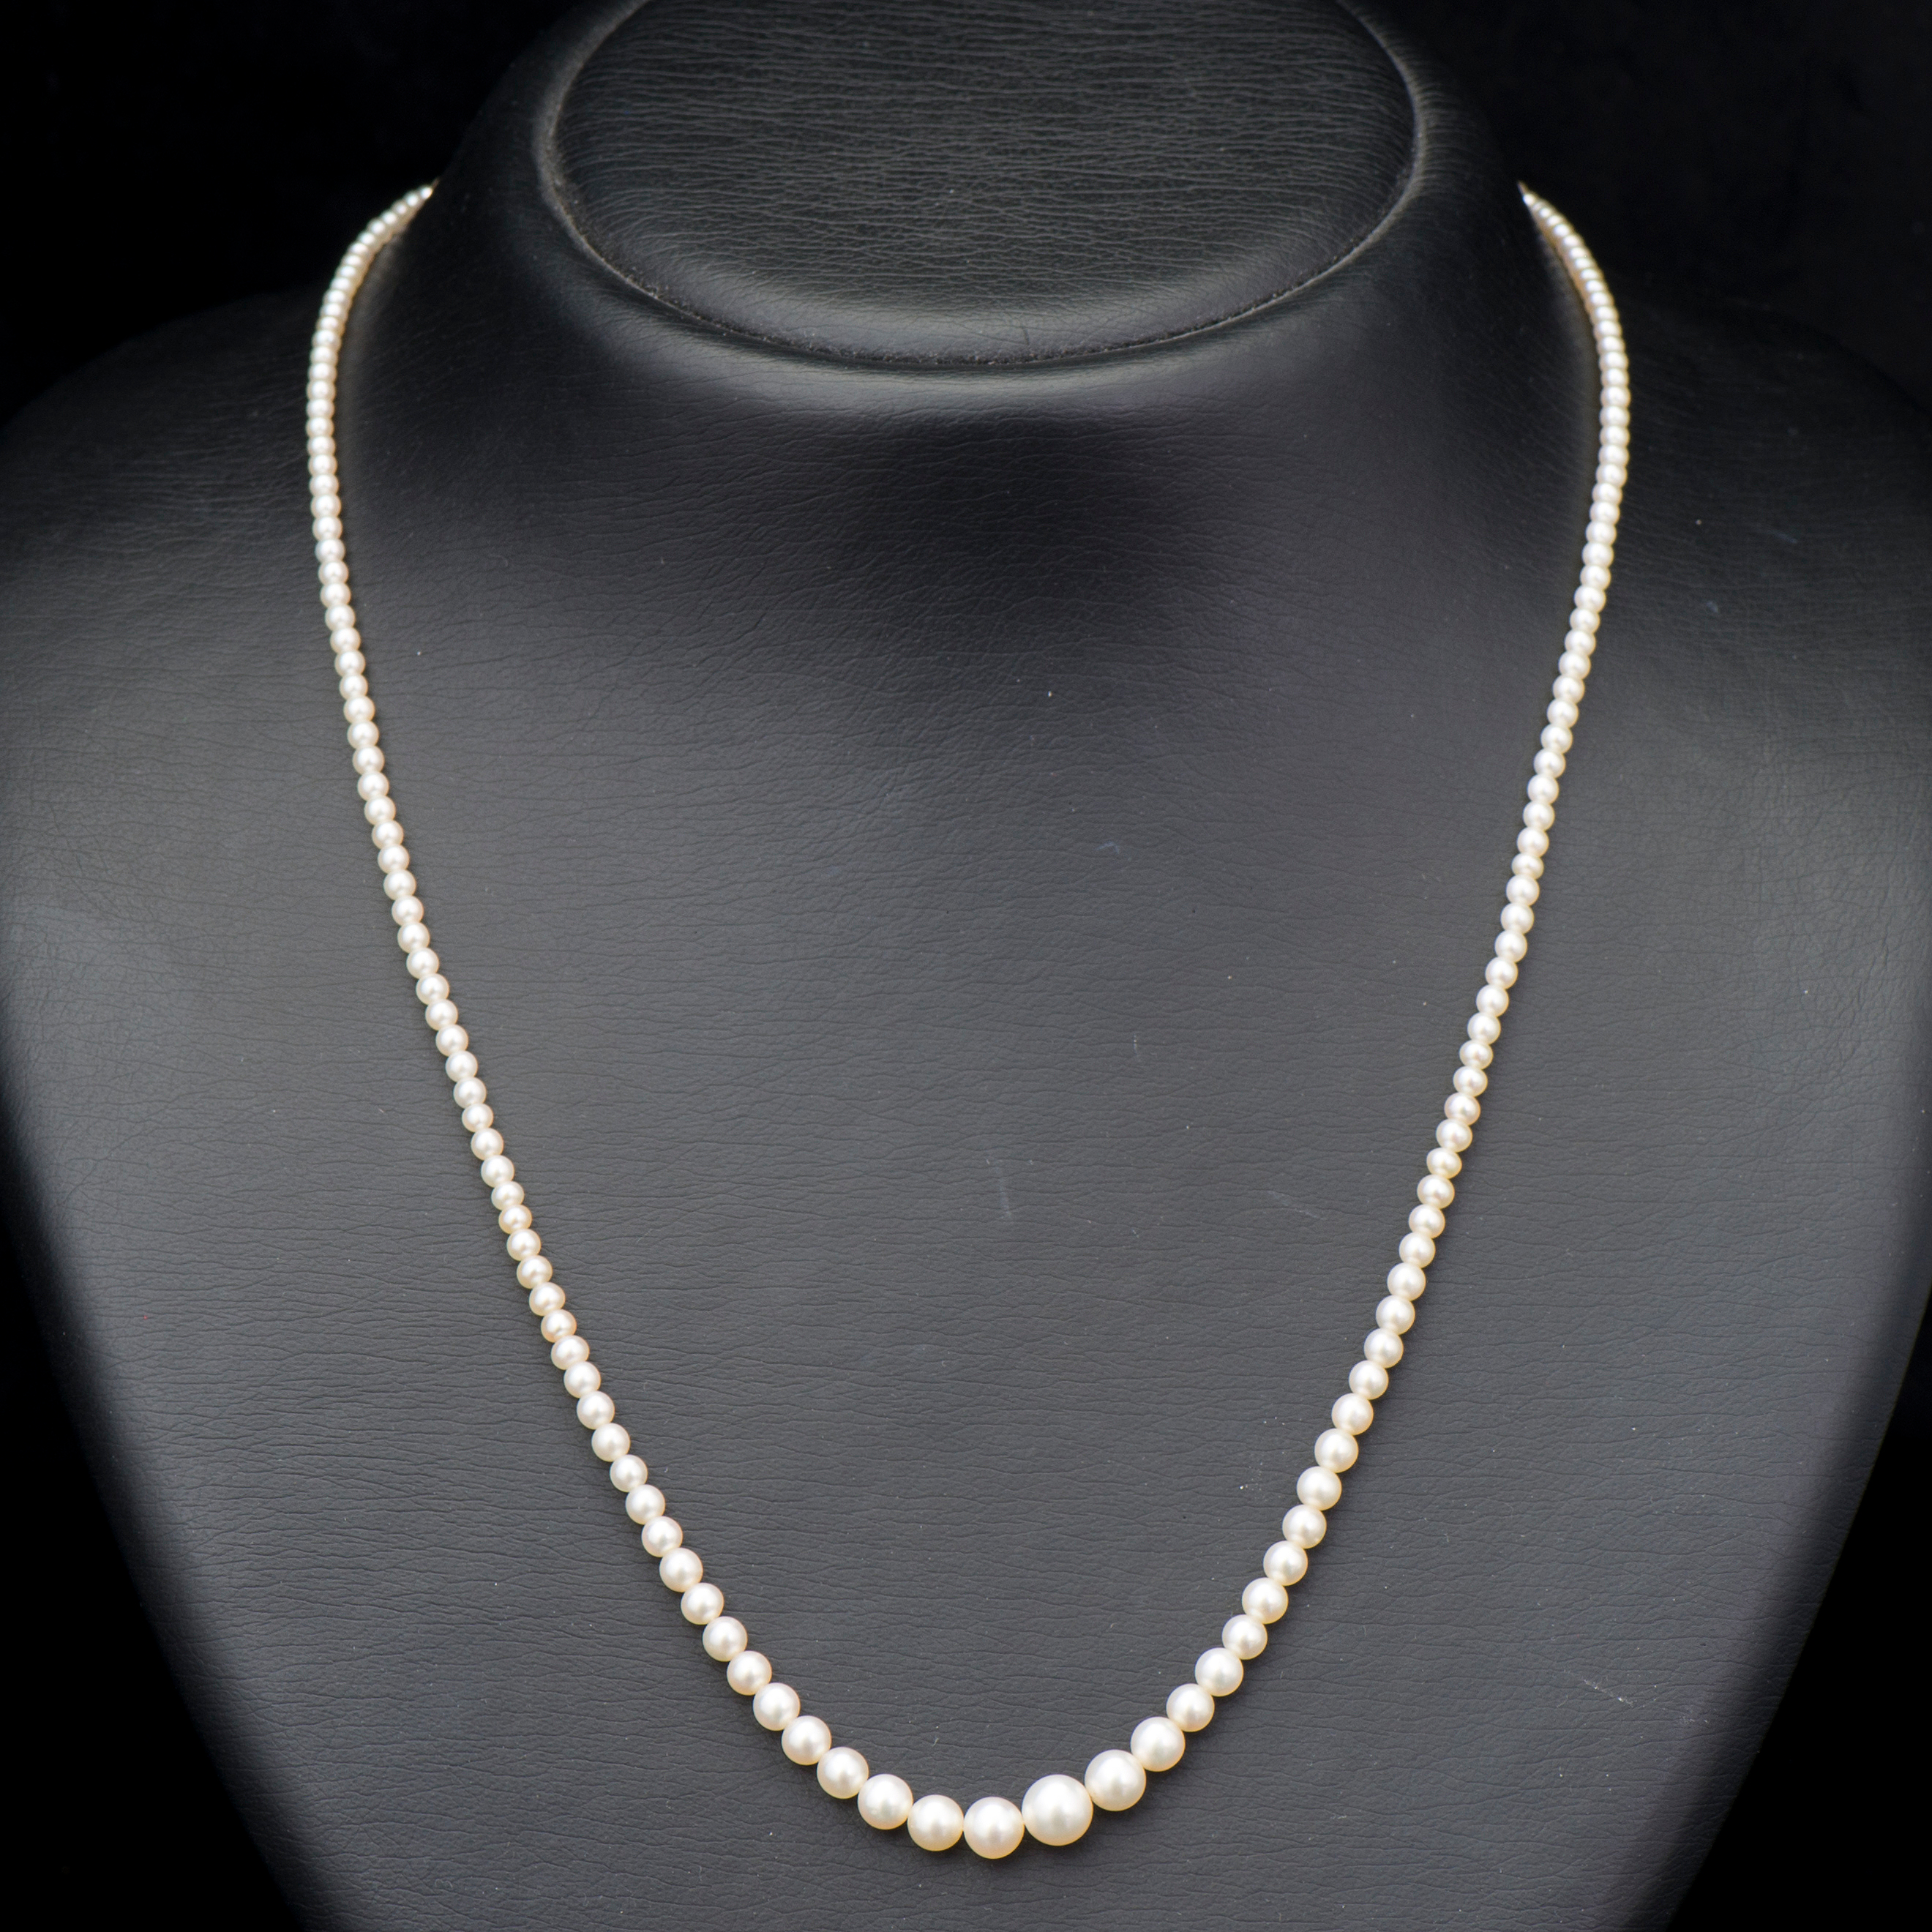 dillards women jewelry s necklace silver jewellery c crystal necklaces zi pearl accessories